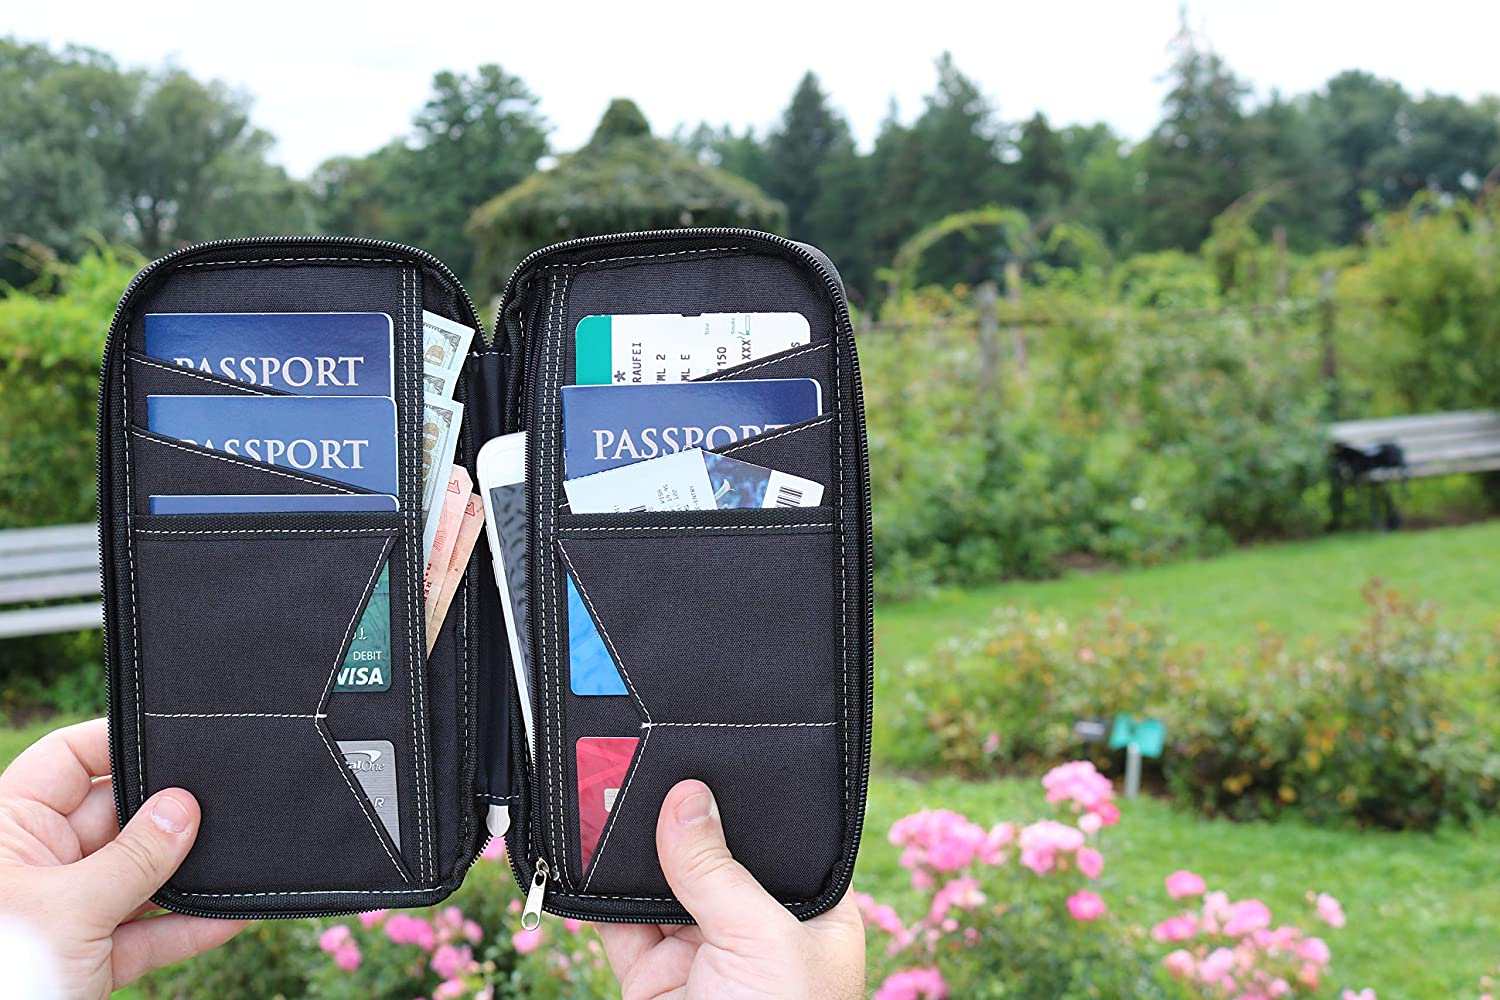 Perfect Document Holder for Family and Business Travel and 6 Passports Currency Cards VentureLite Family Passport Holder Premium Multi-Purpose Travel Wallets with Pockets for Phone